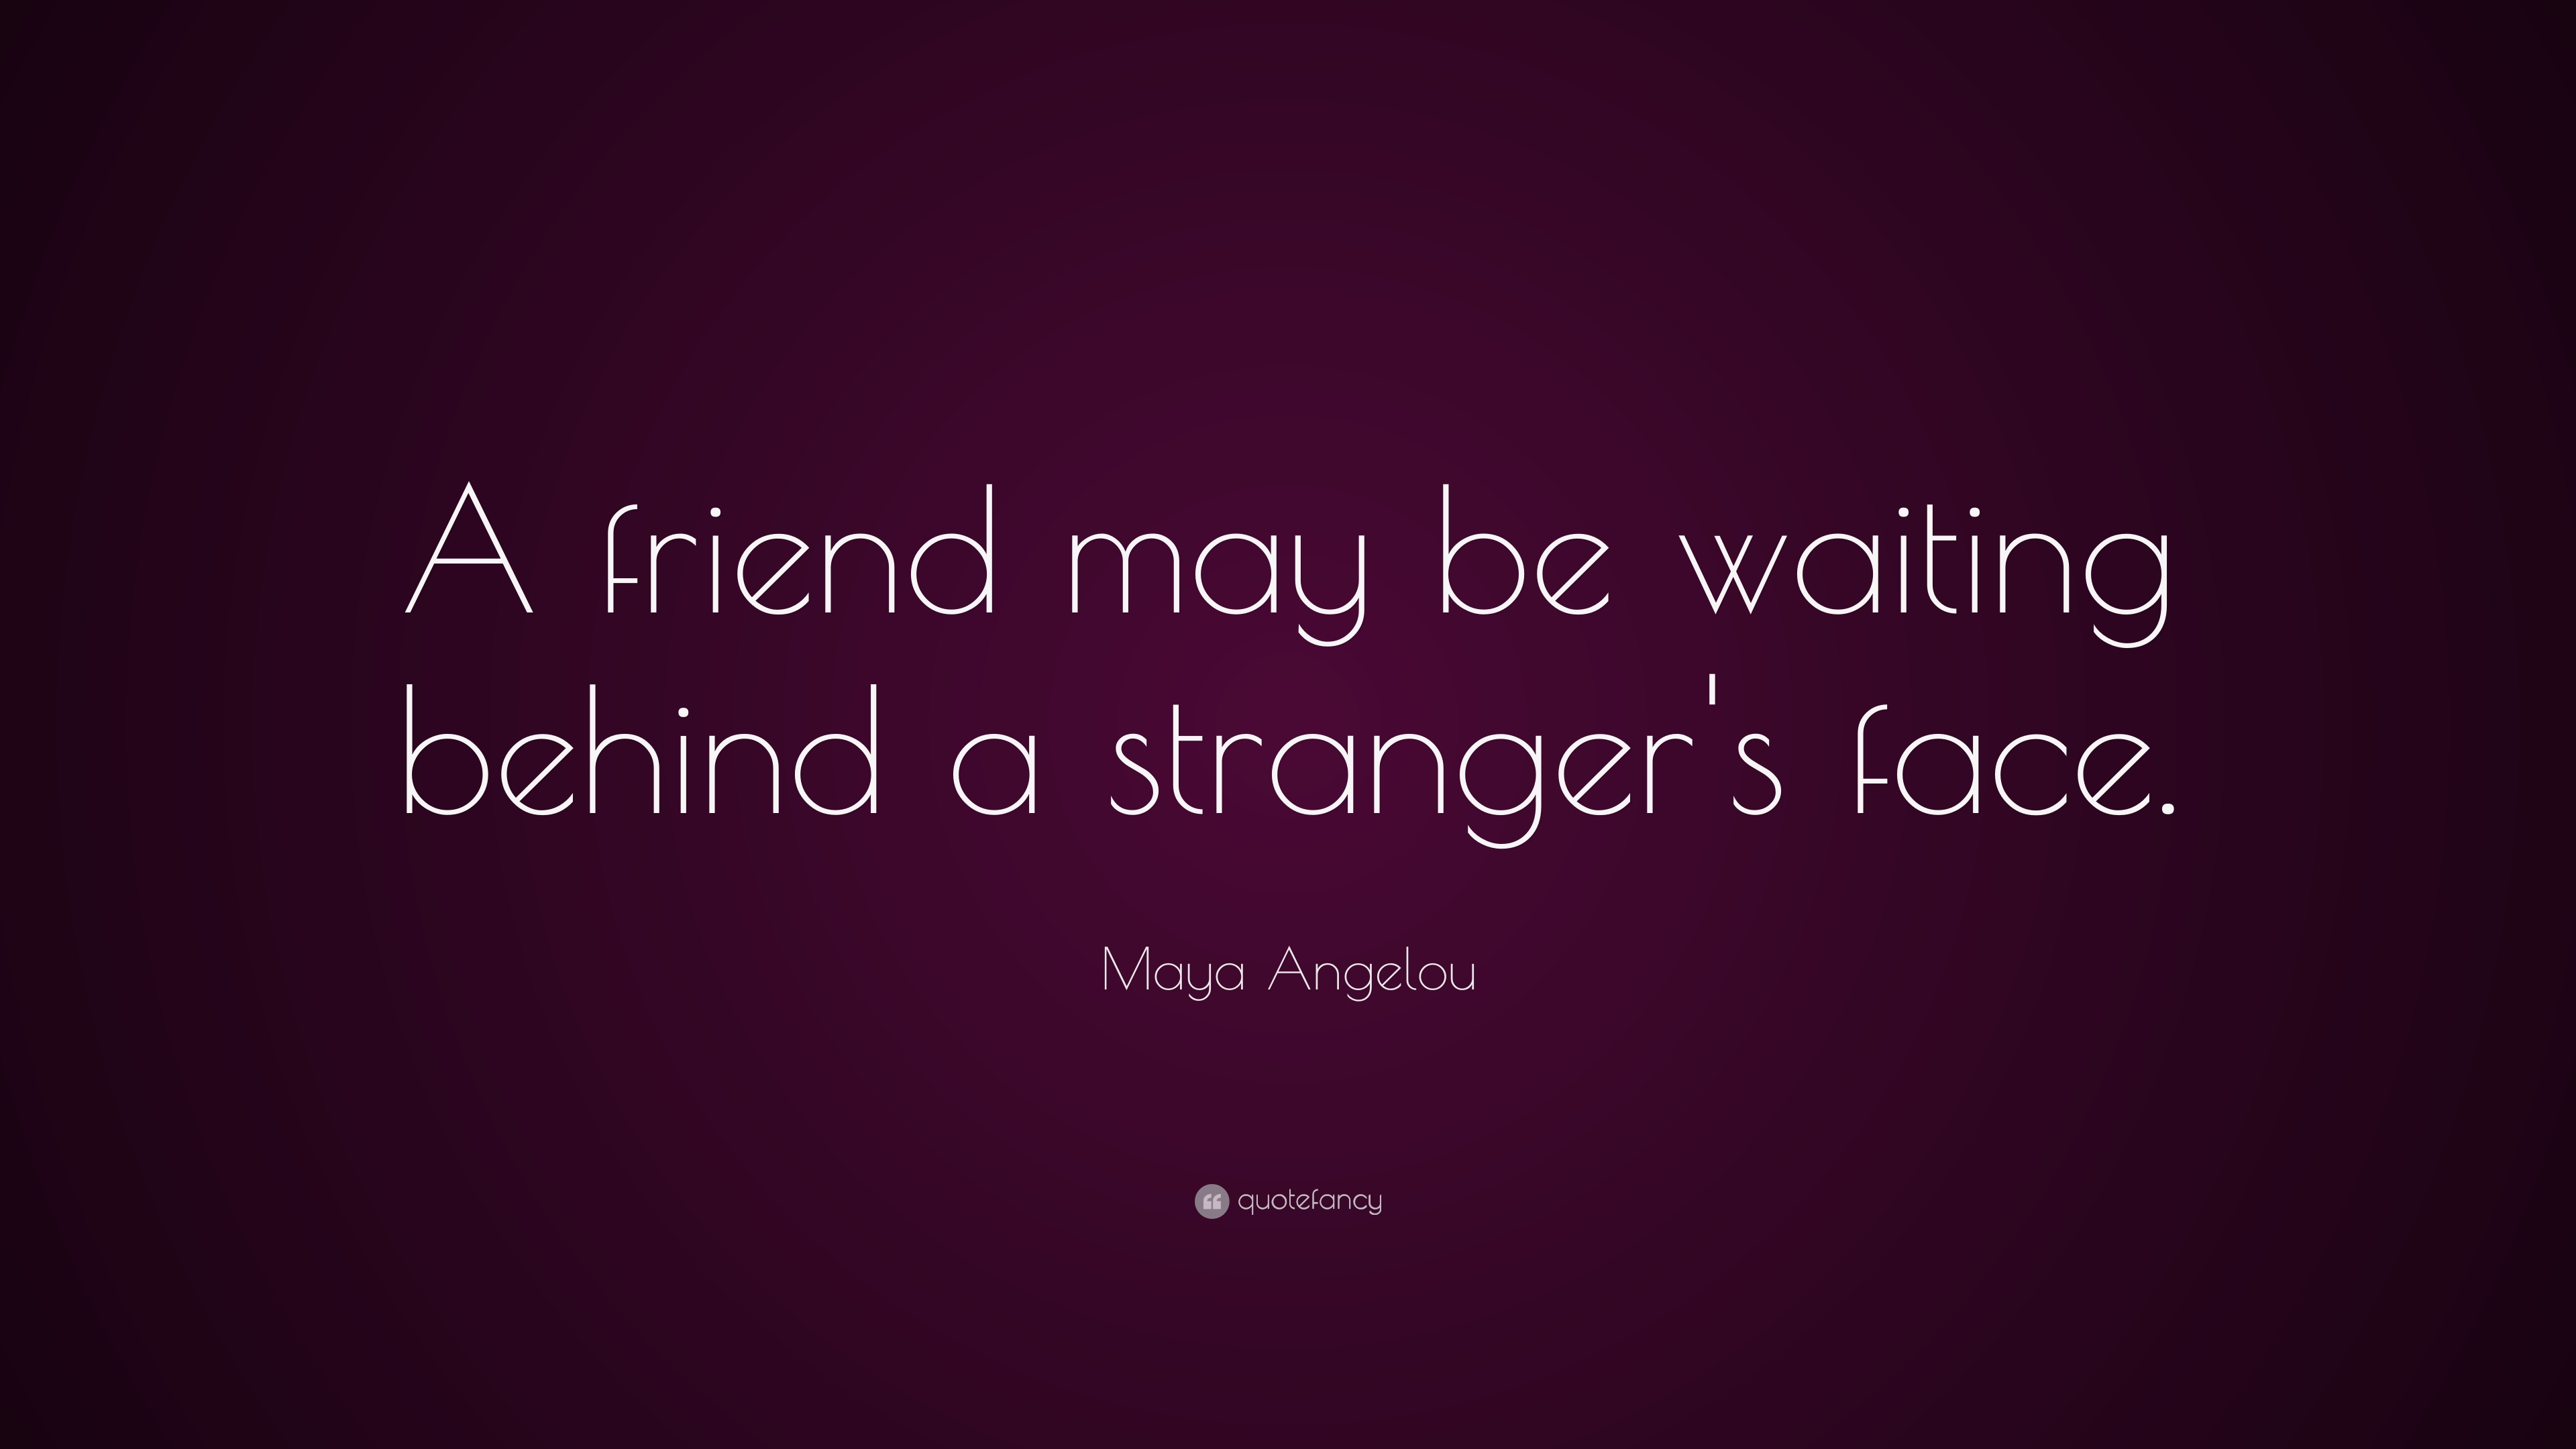 Quotes About Lost Friendships And Moving On Friendship Quotes 21 Wallpapers  Quotefancy